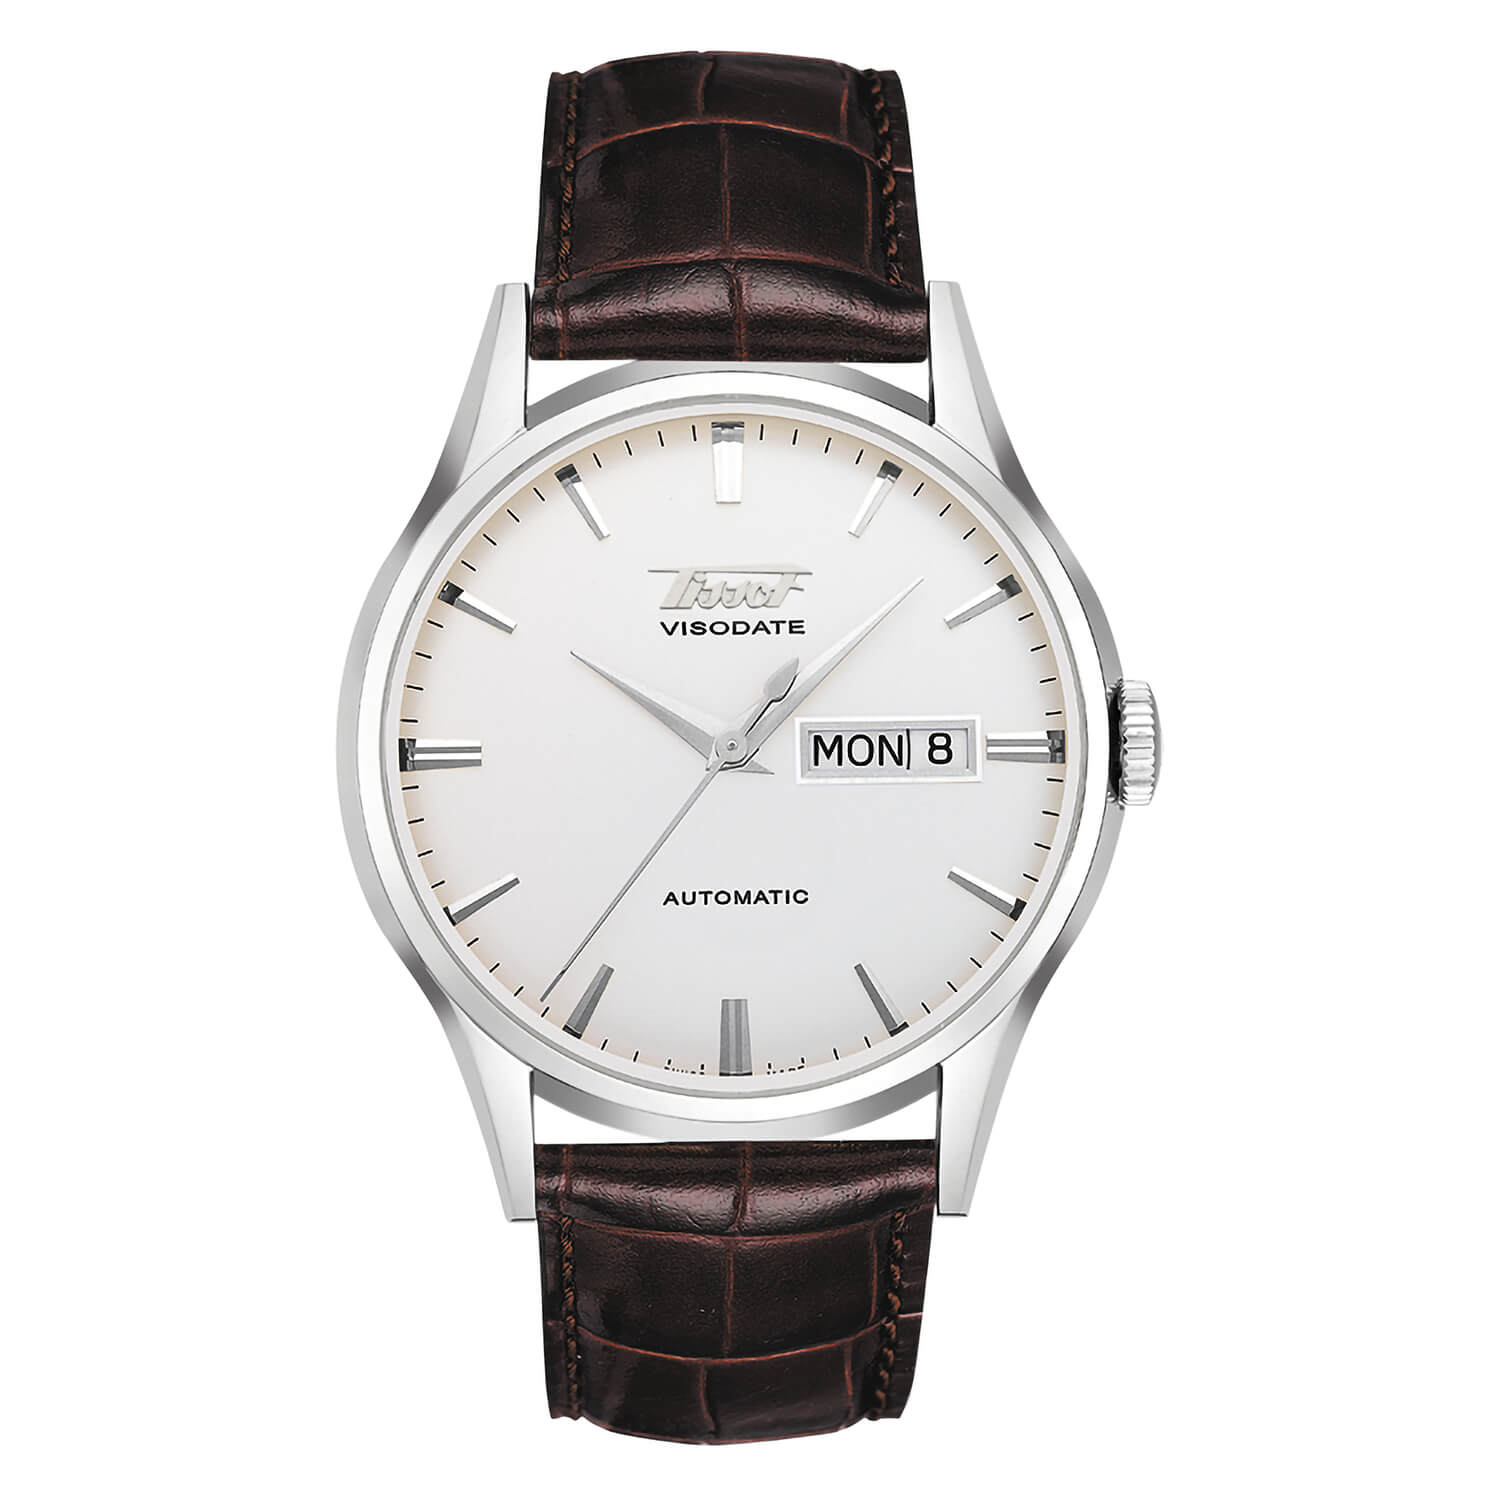 Tissot Visodate men's automatic brown leather strap watch